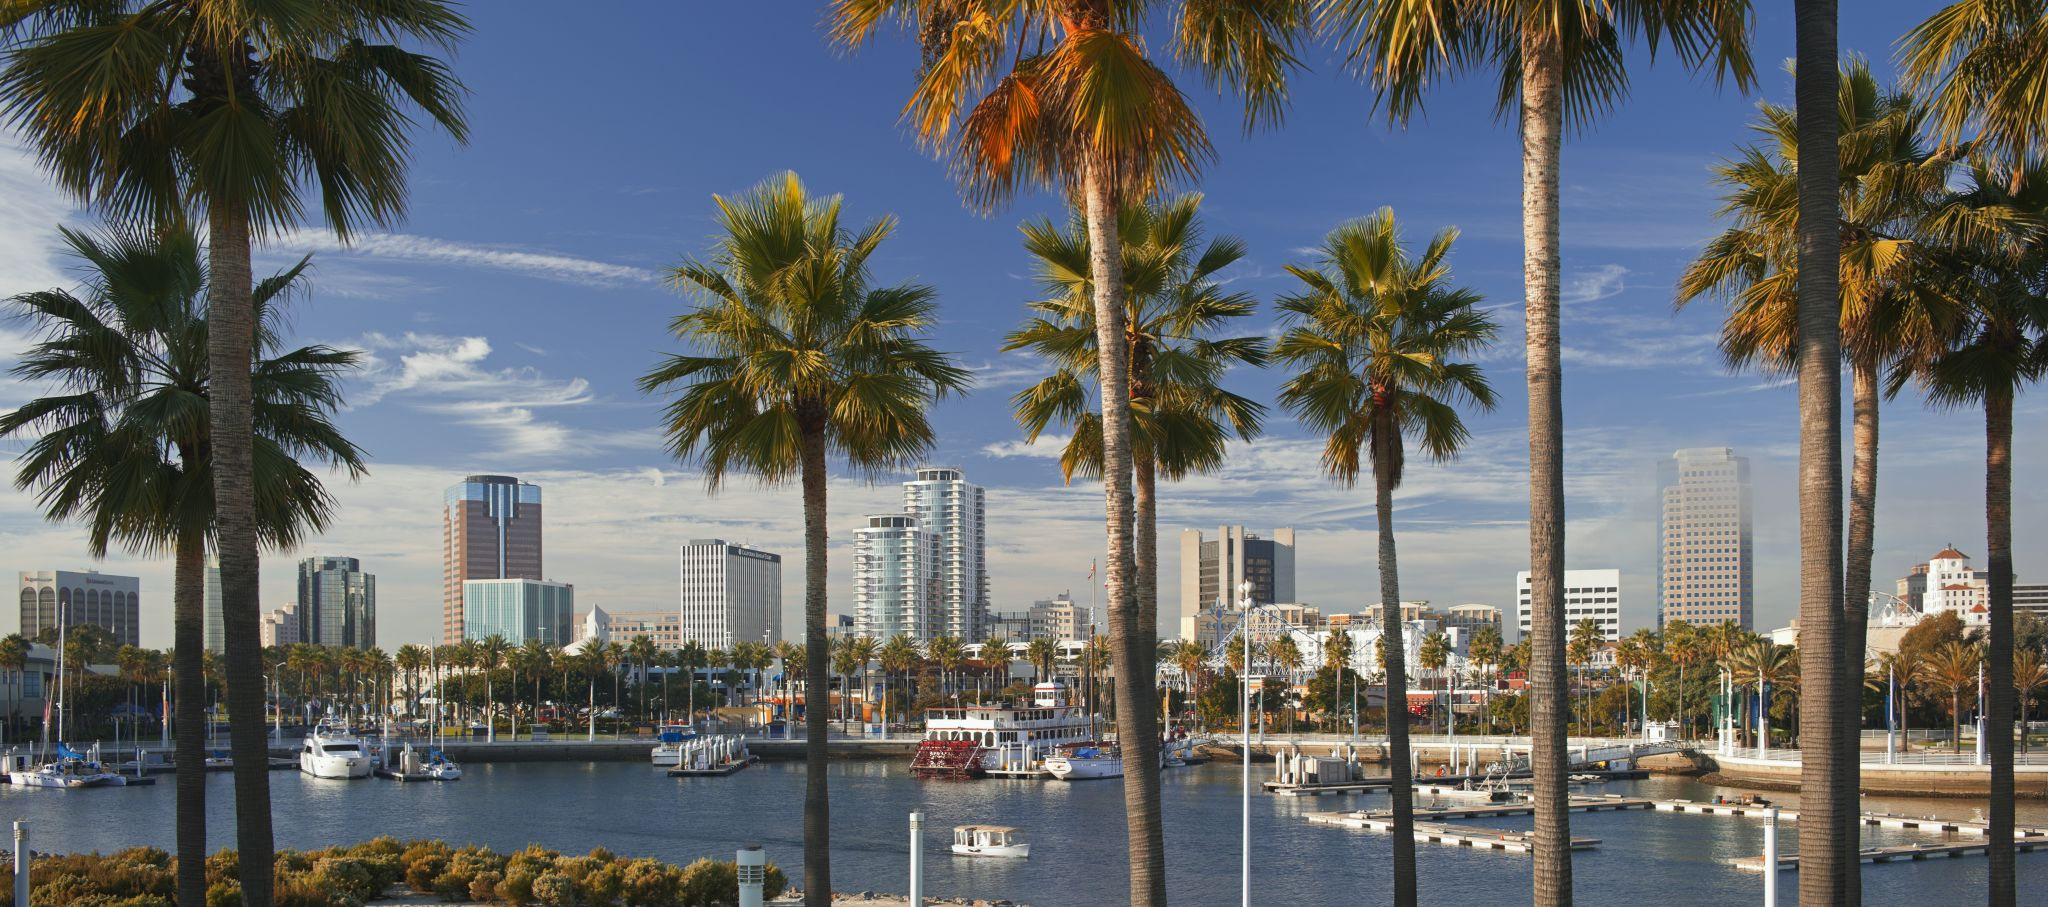 Long Beach is where the classic Southern California lifestyle is still possible